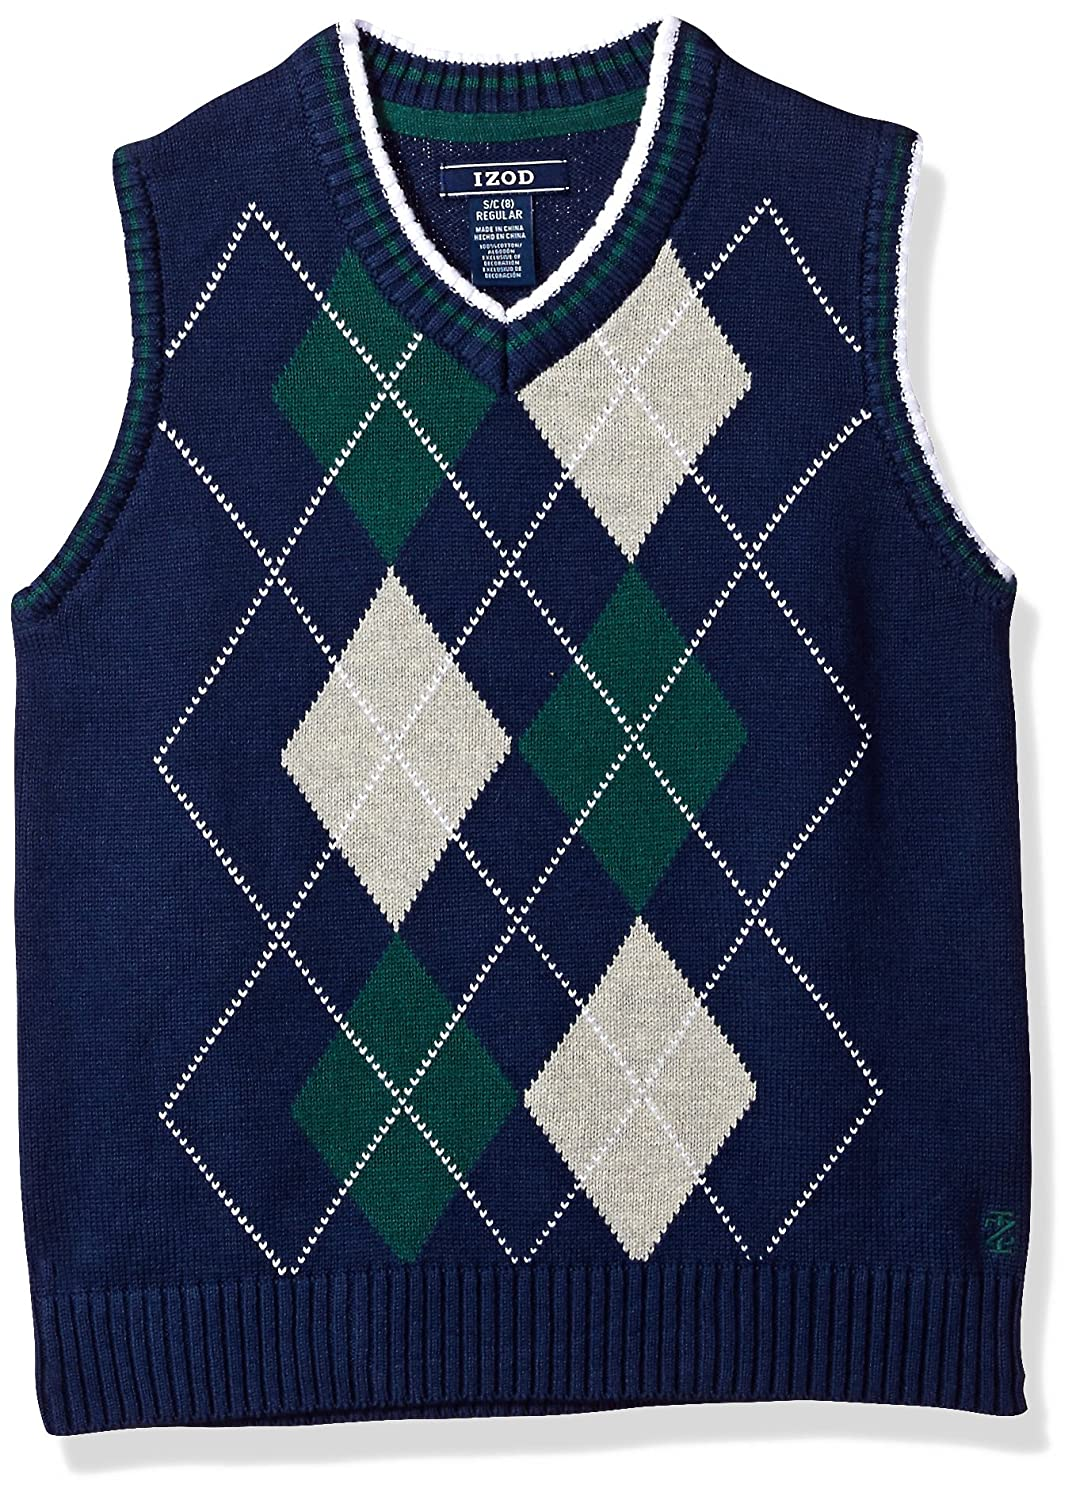 IZOD Boys' Big Double Argyle Sweater Vest, Dark Blue, Small IZOD Children' s Apparel Z813084W